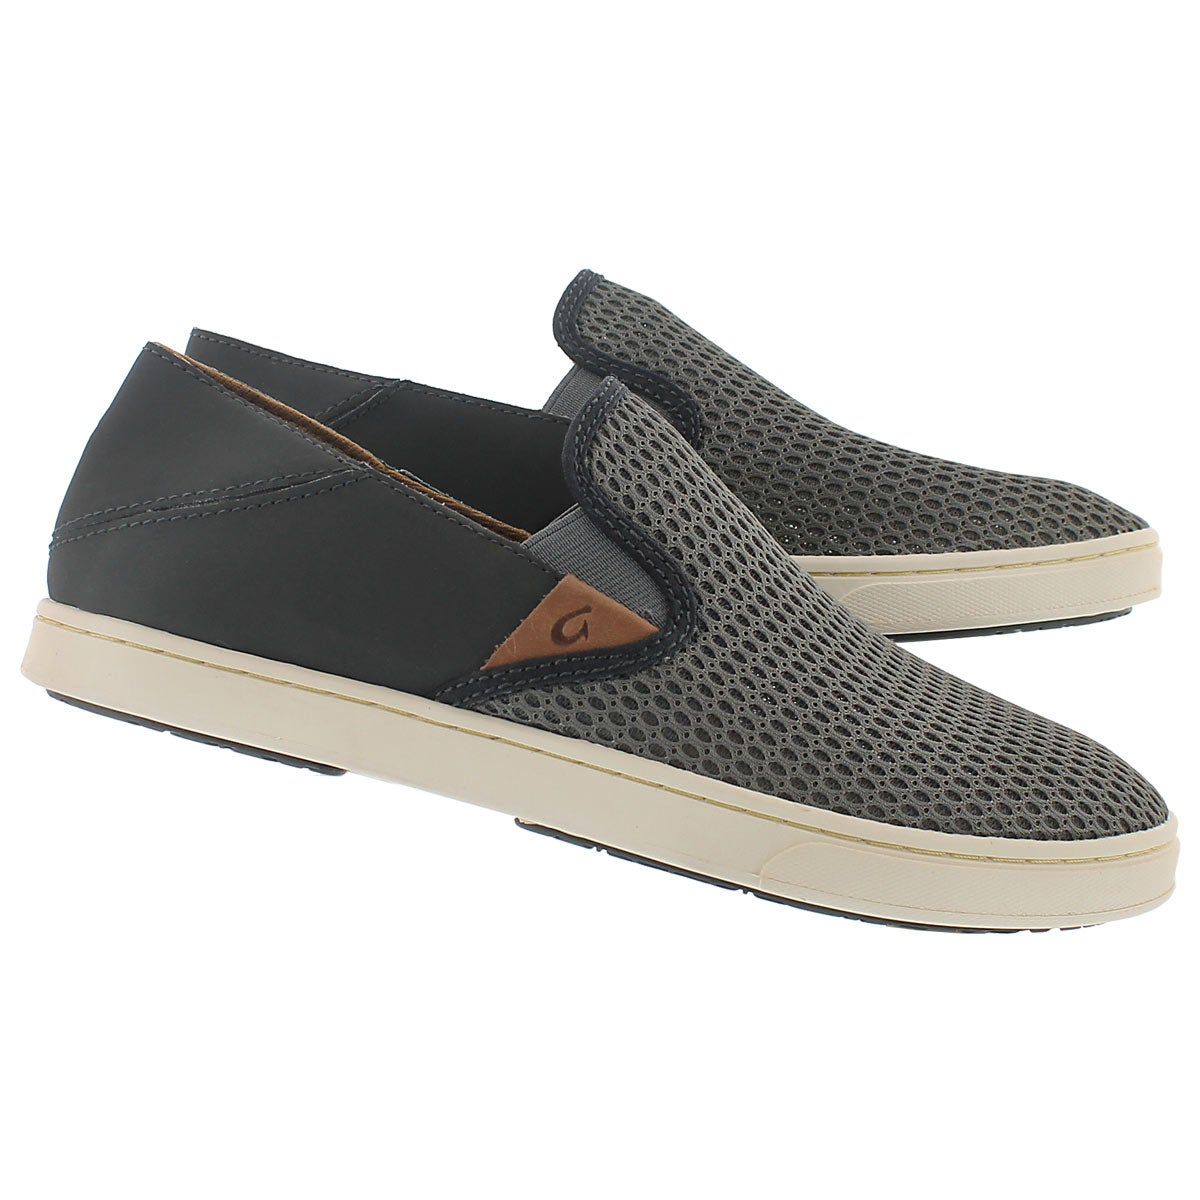 Lds Pehuea charcoal slip on casual shoe